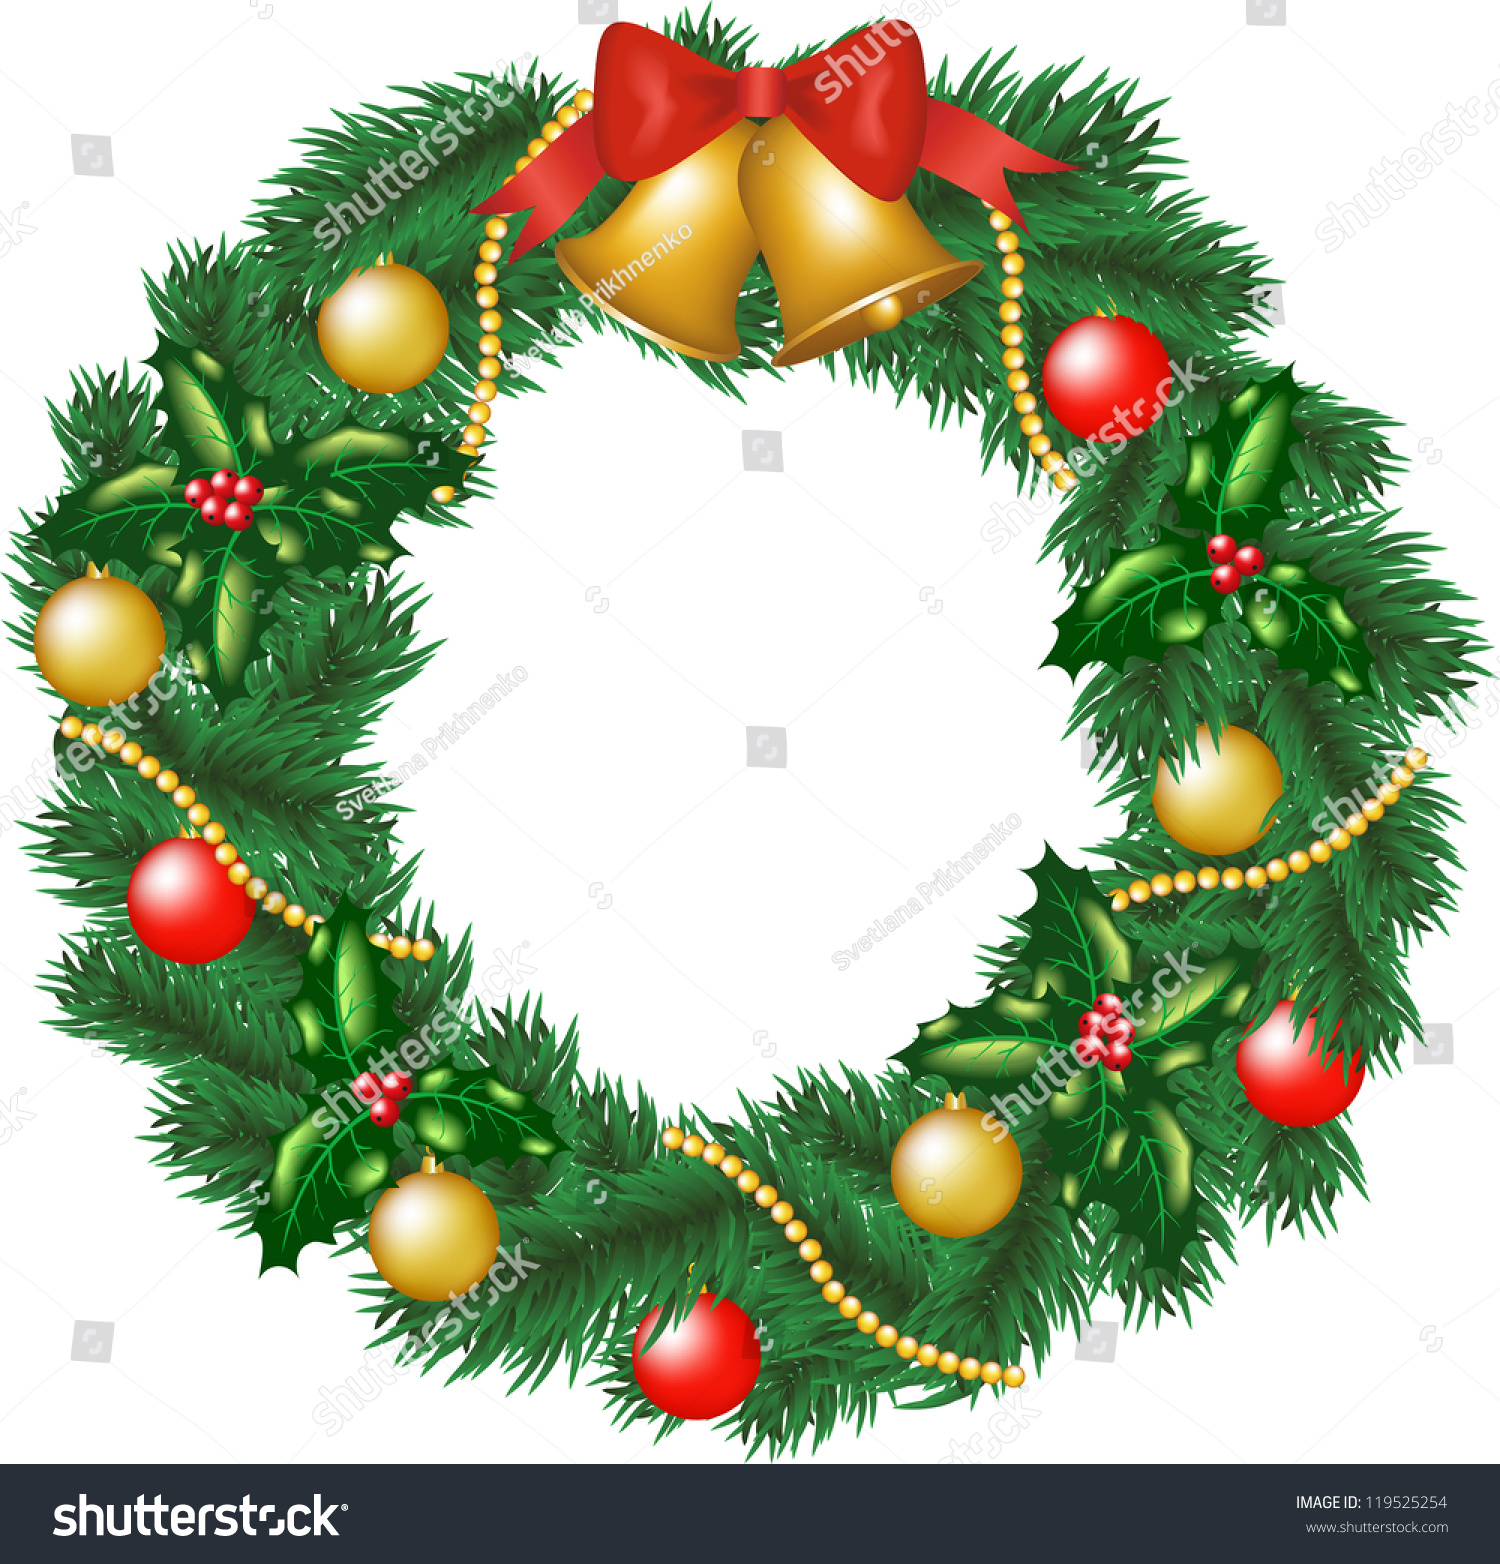 There's truly no better way to deck the halls than with Christmas garland. Whether draped across a doorway, hung from a staircase, or displayed on the front door in the form of a Christmas wreath, these ideas are the easiest way to decorate your home (and your tree!) for the holidays.